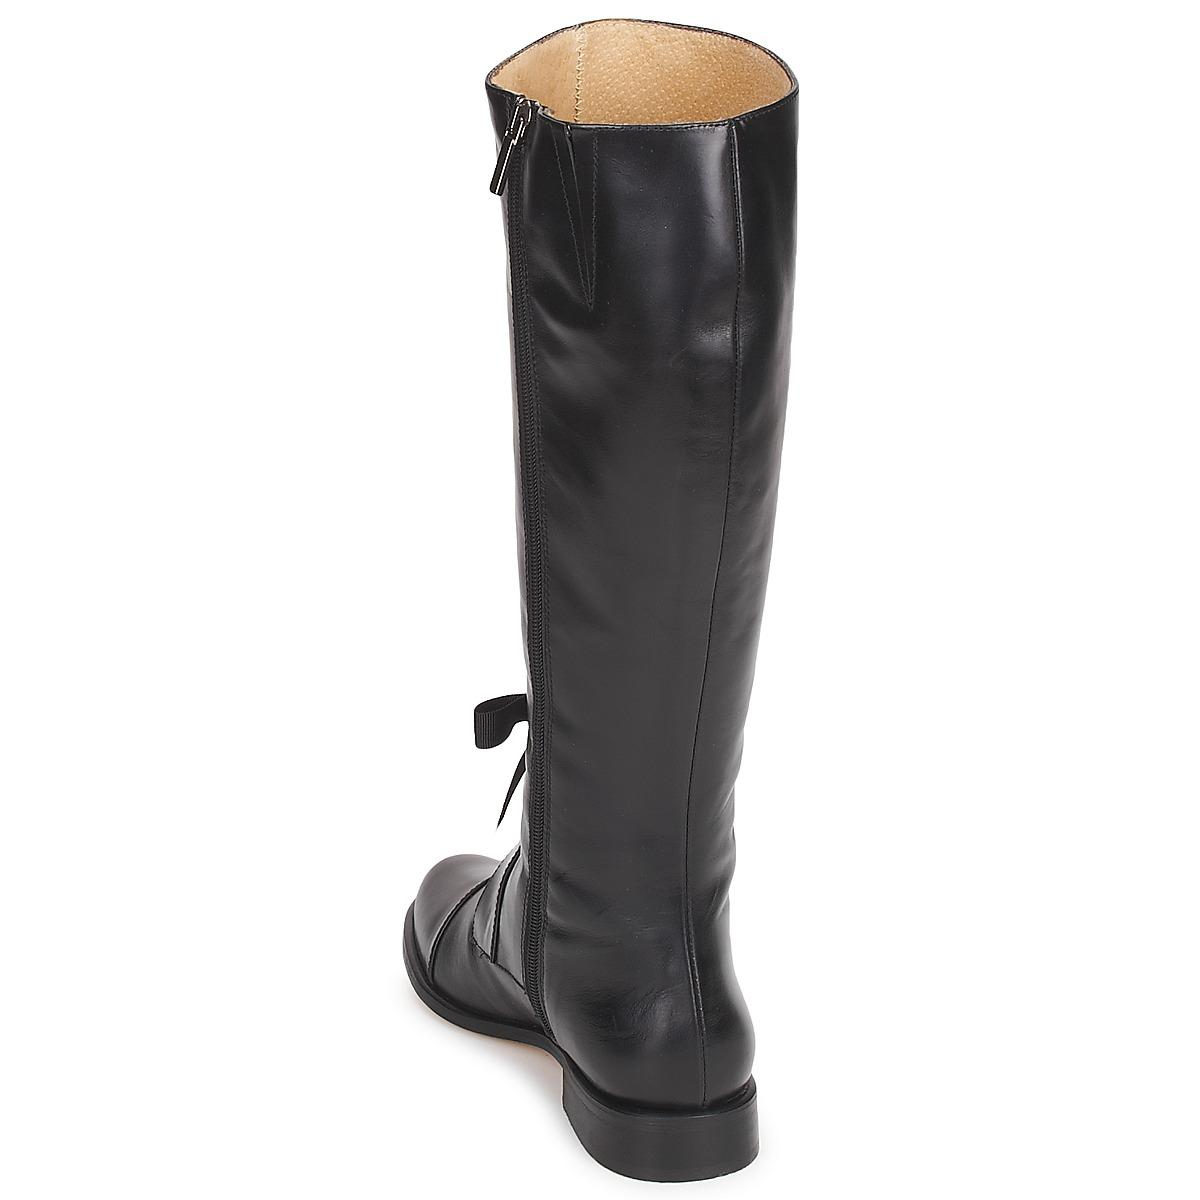 Fericelli Leather Maura High Boots in Black